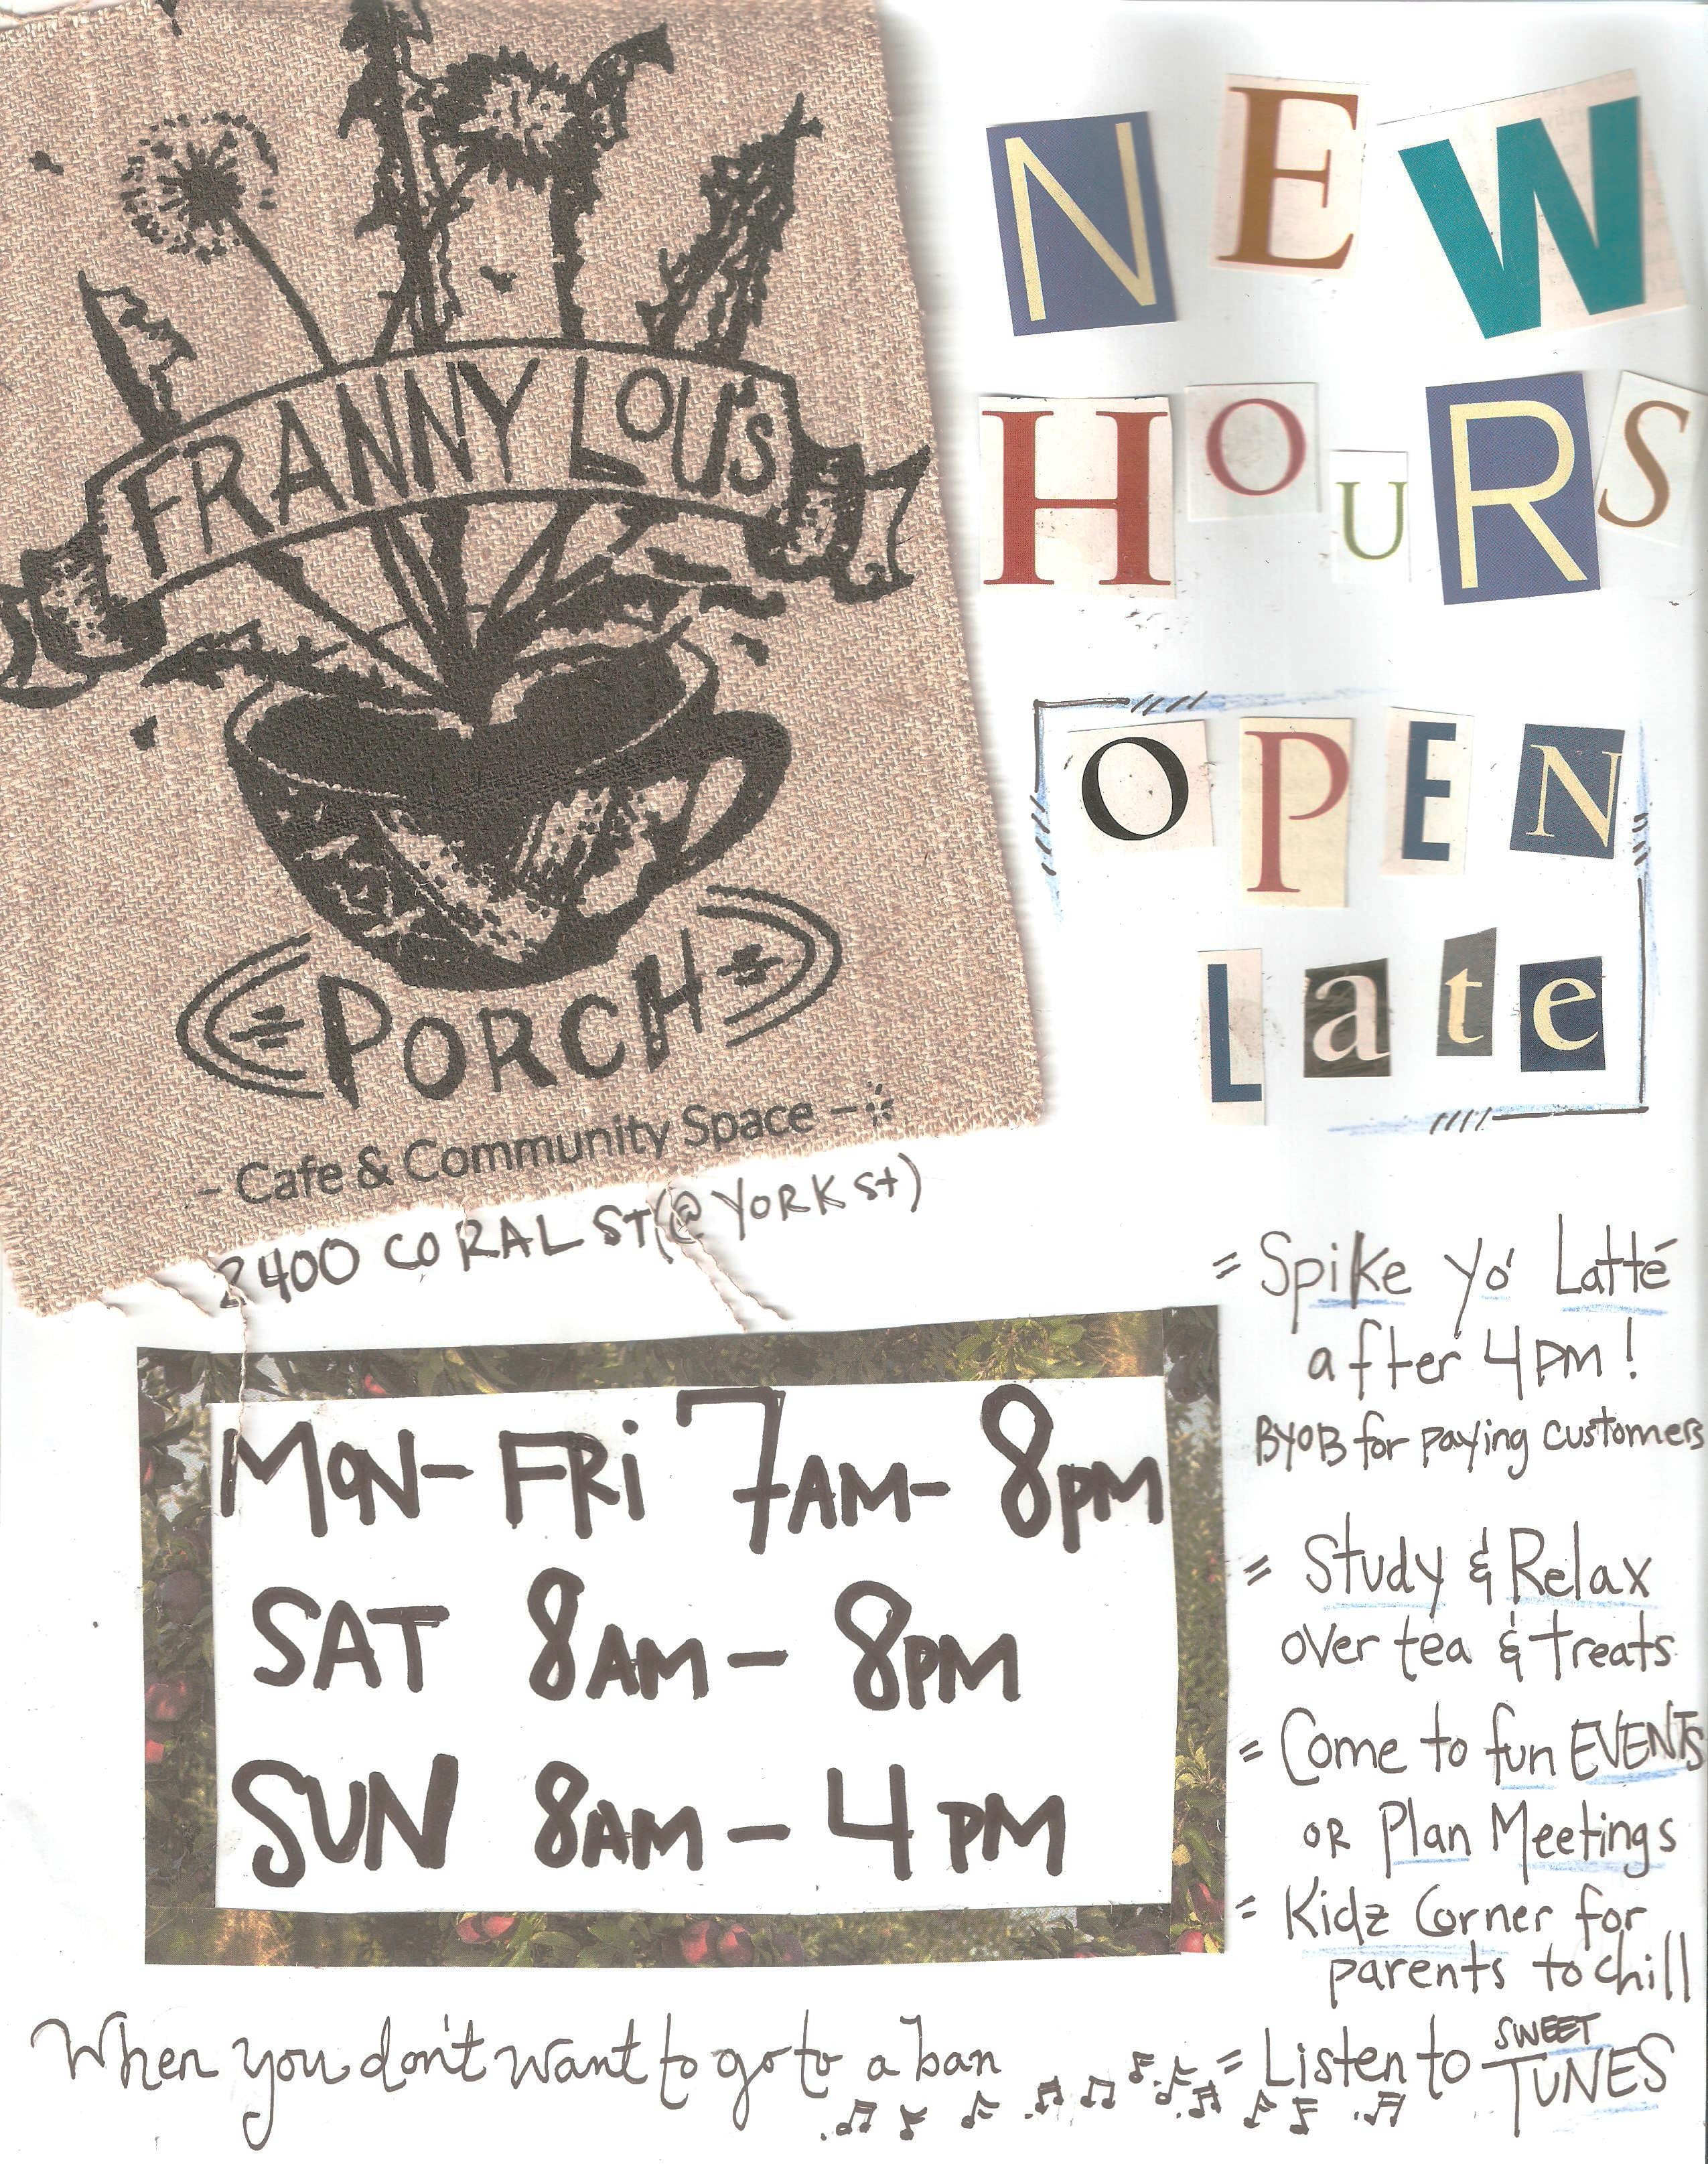 2016 New Fall hours 001